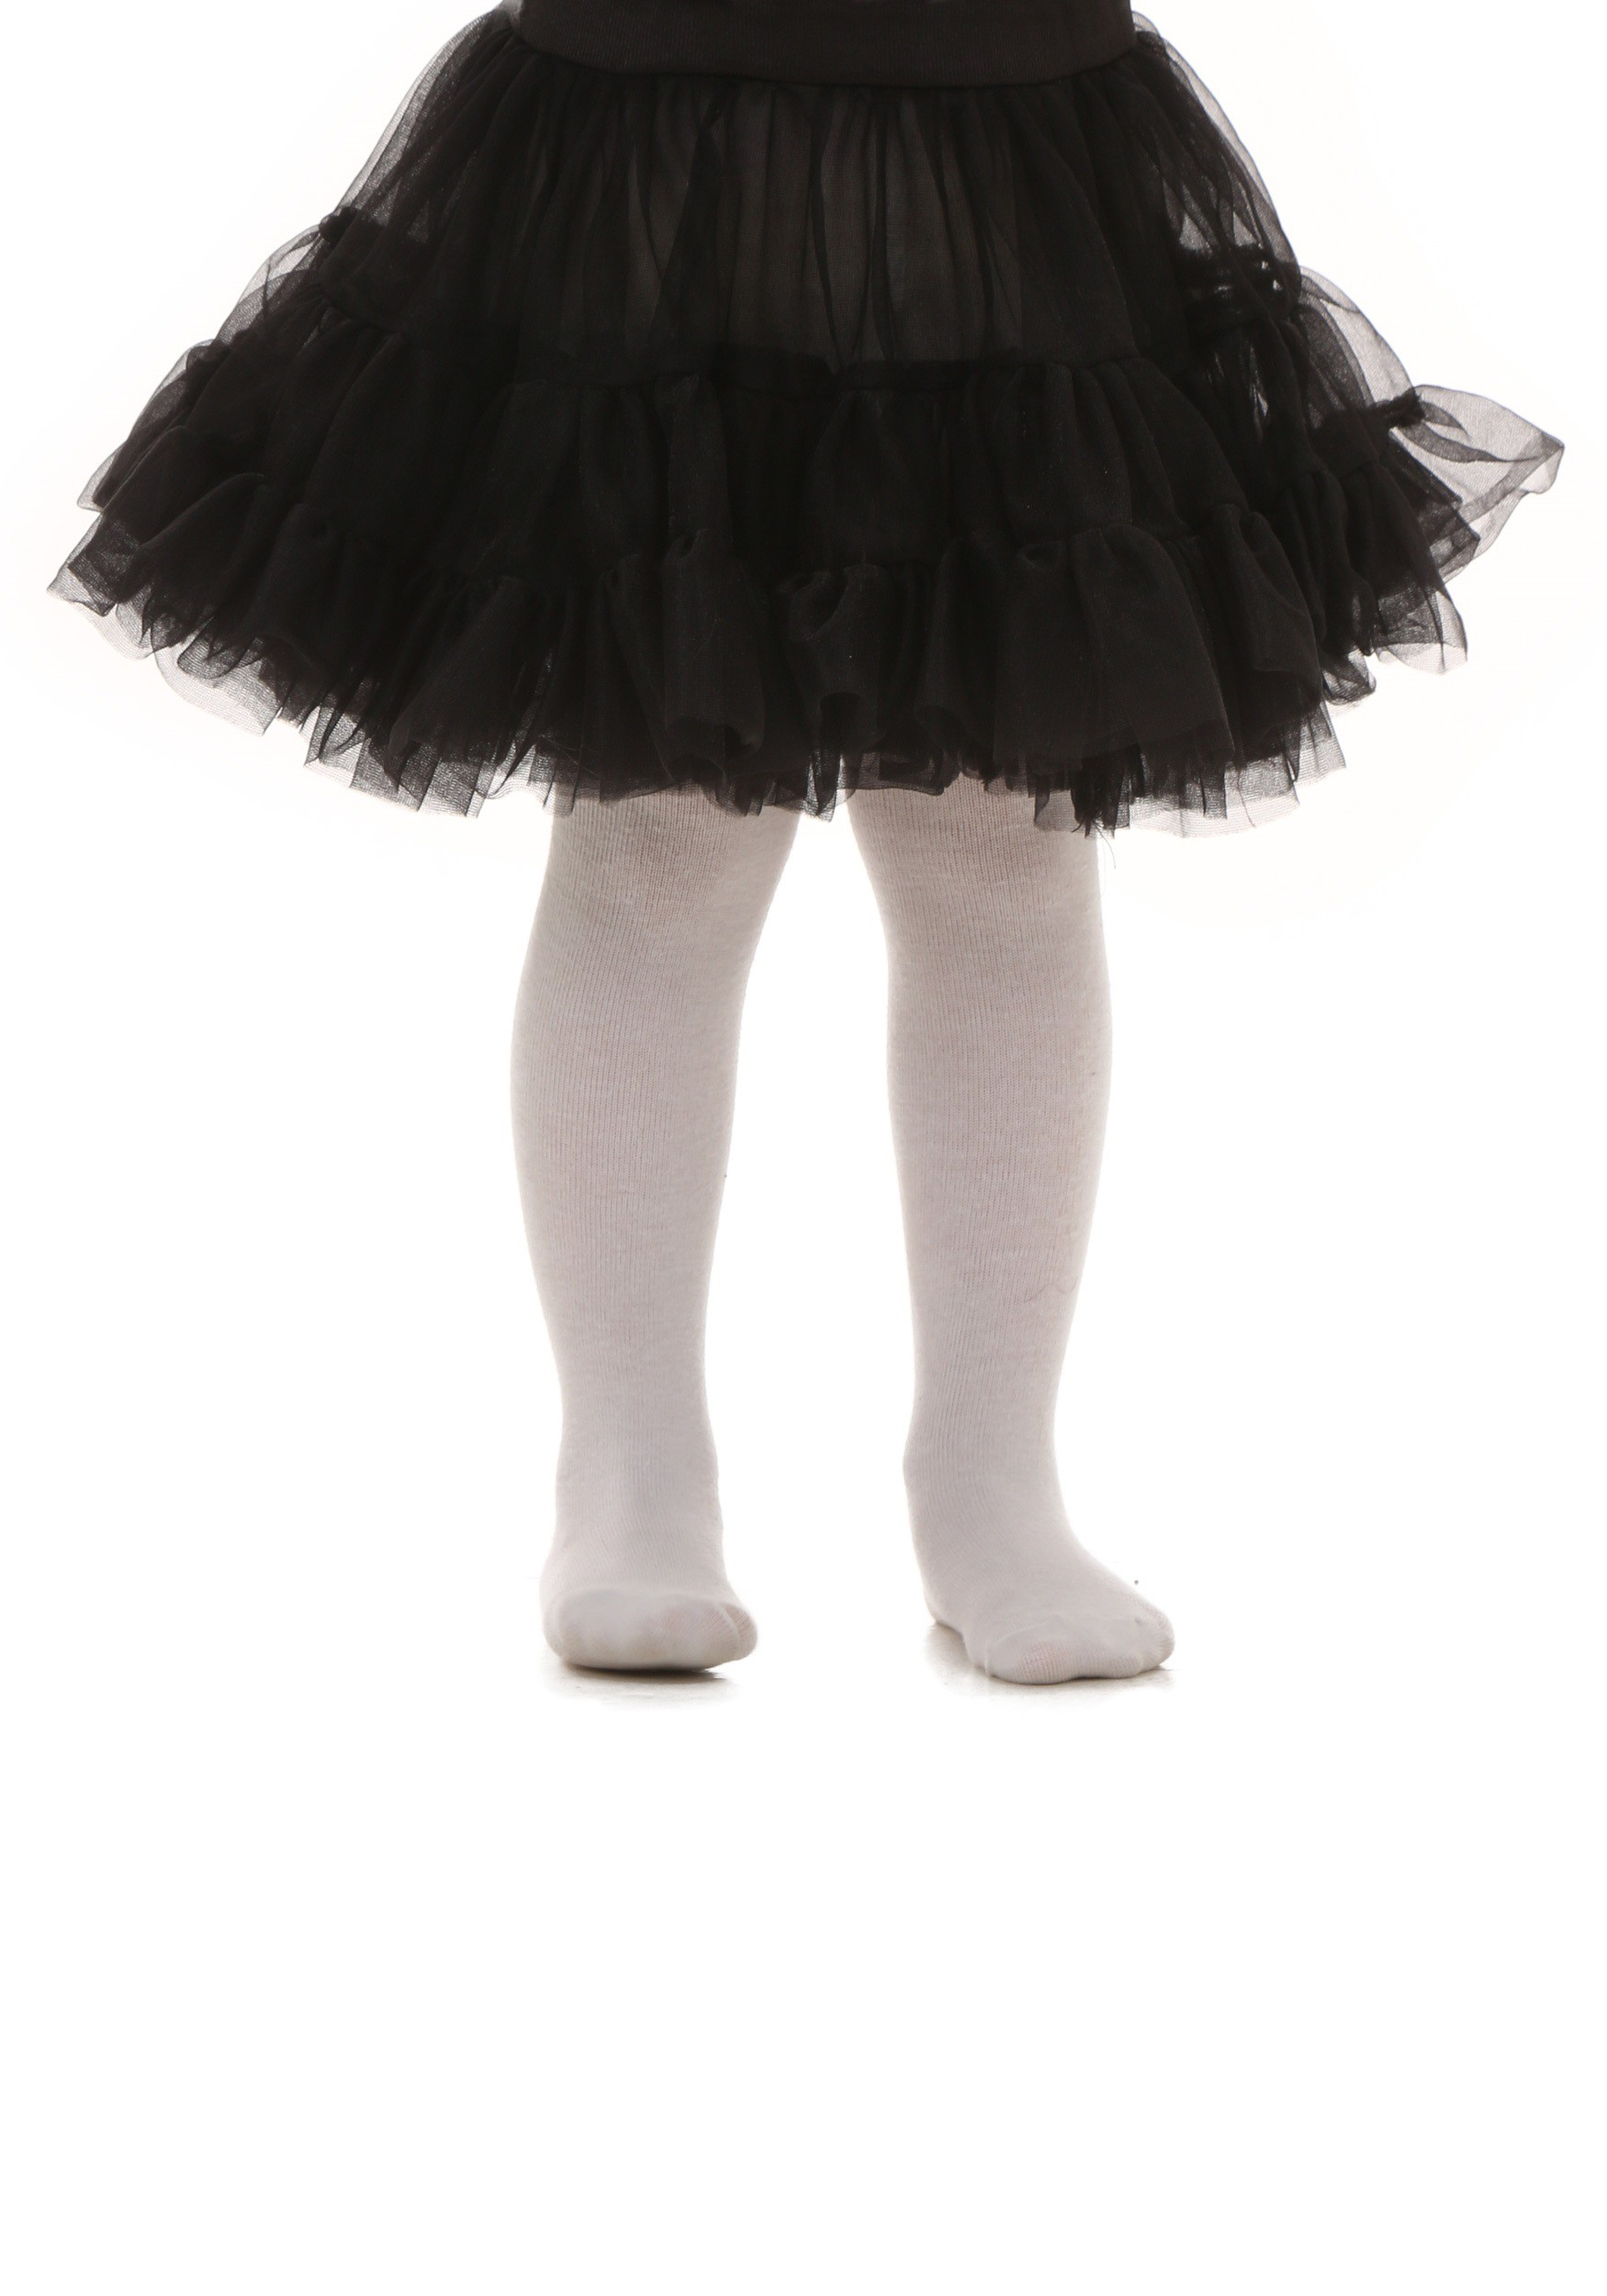 Toddler Black Knee Length Crinoline